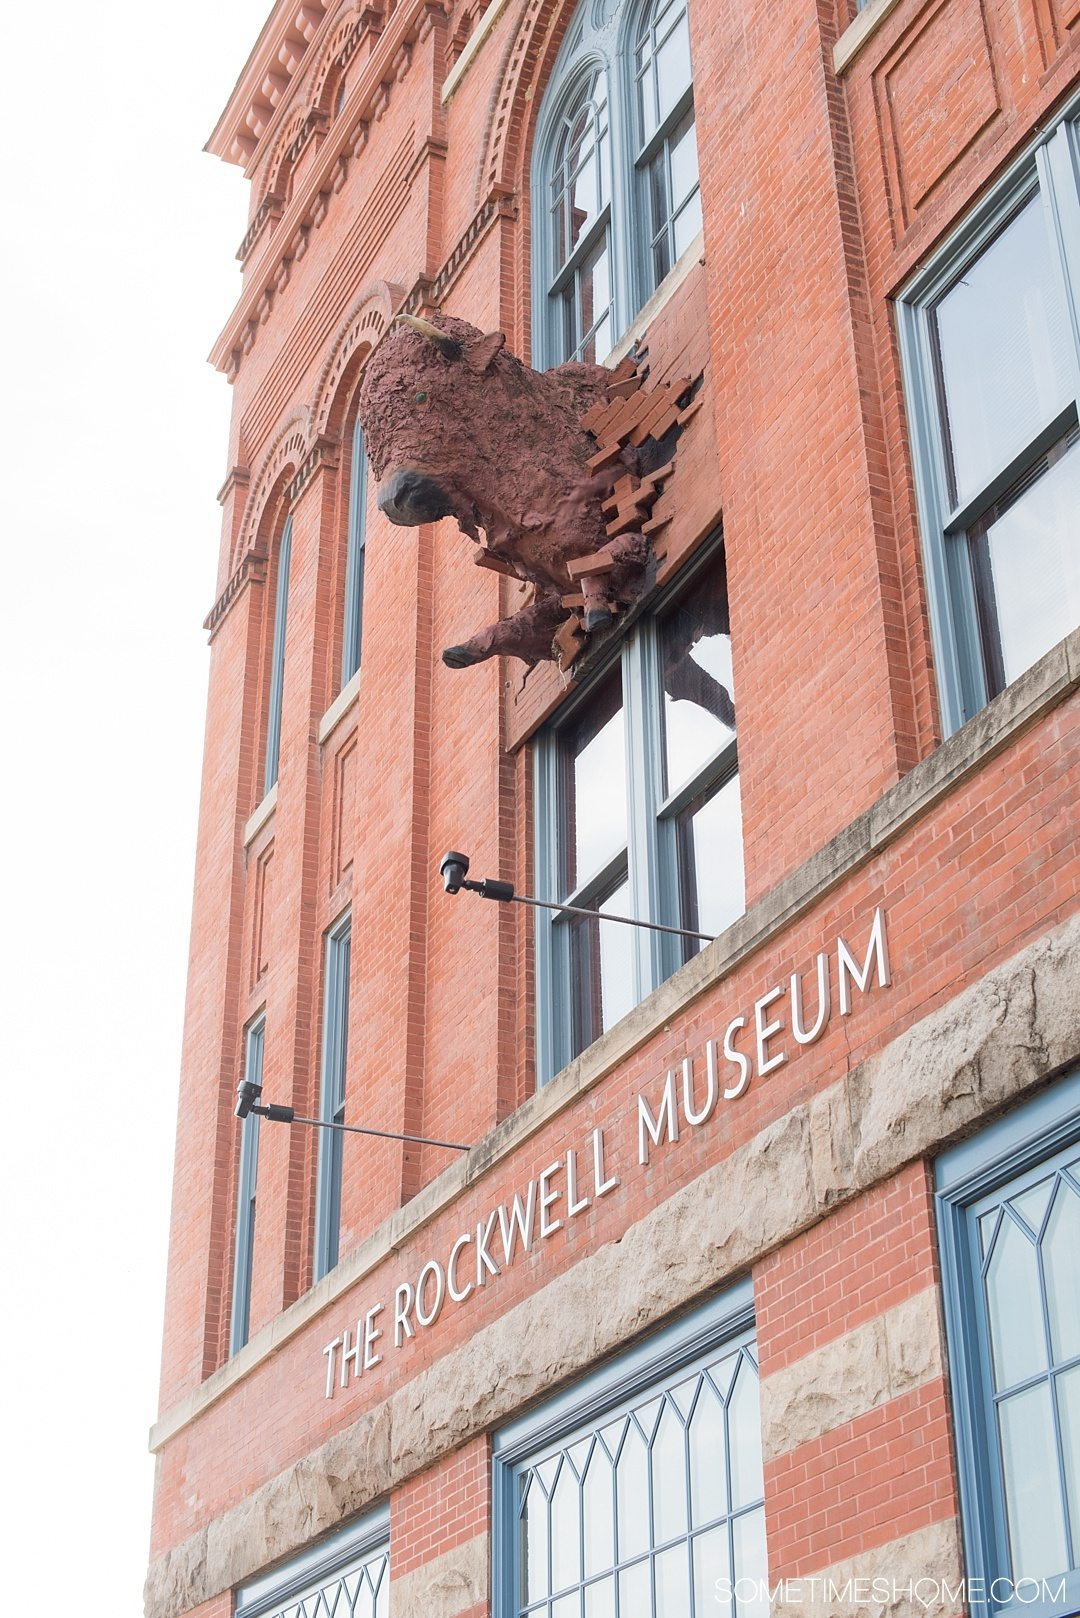 Things to do in Corning NY in the Finger Lakes region on Sometimes Home travel blog. Photo of the outside of the Rockwell Museum with an extensive collection of Native American art.